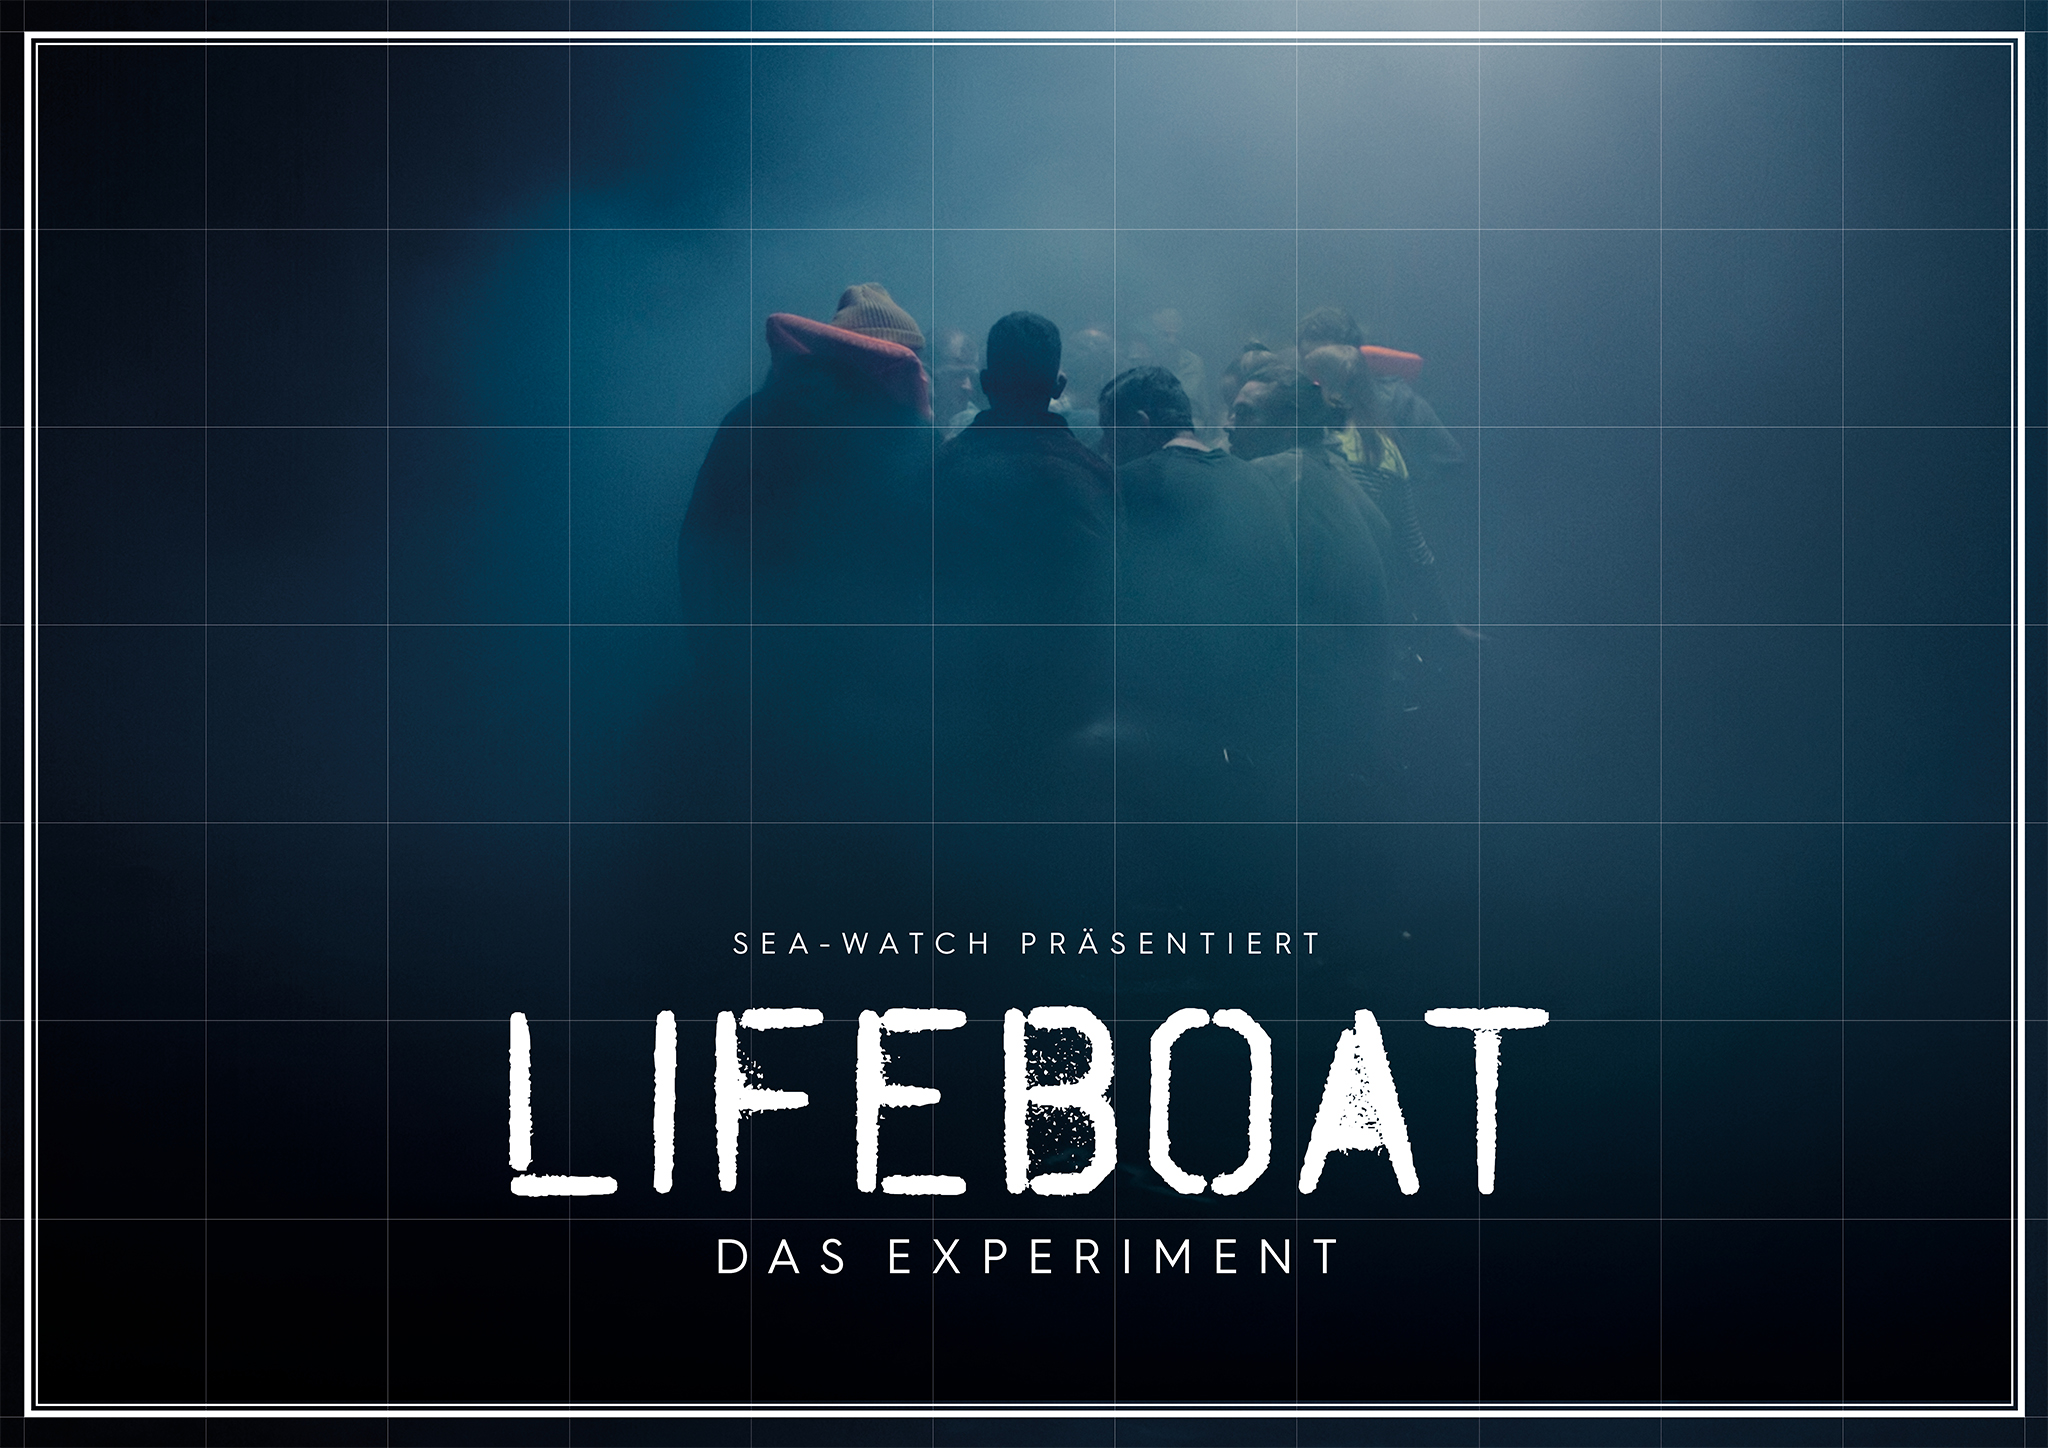 LIFEBOAT – Das Experiment